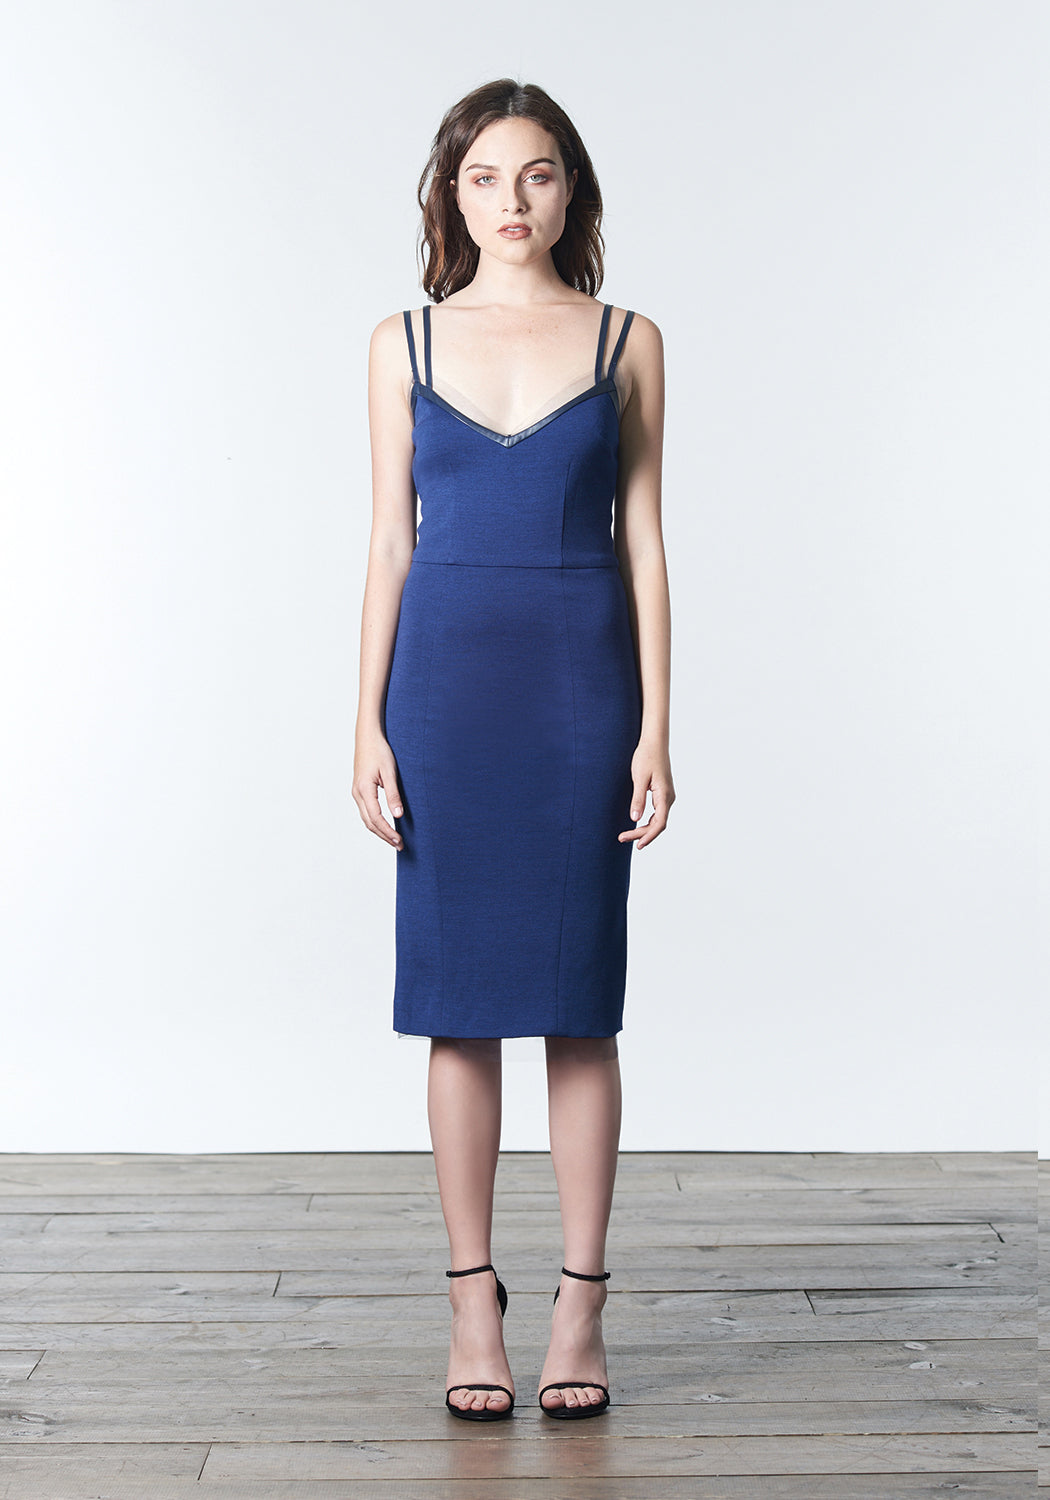 Fall, Autumn, Winter cocktail dress made of wool and rayon with leather and silk mesh trim, in blue azure color.